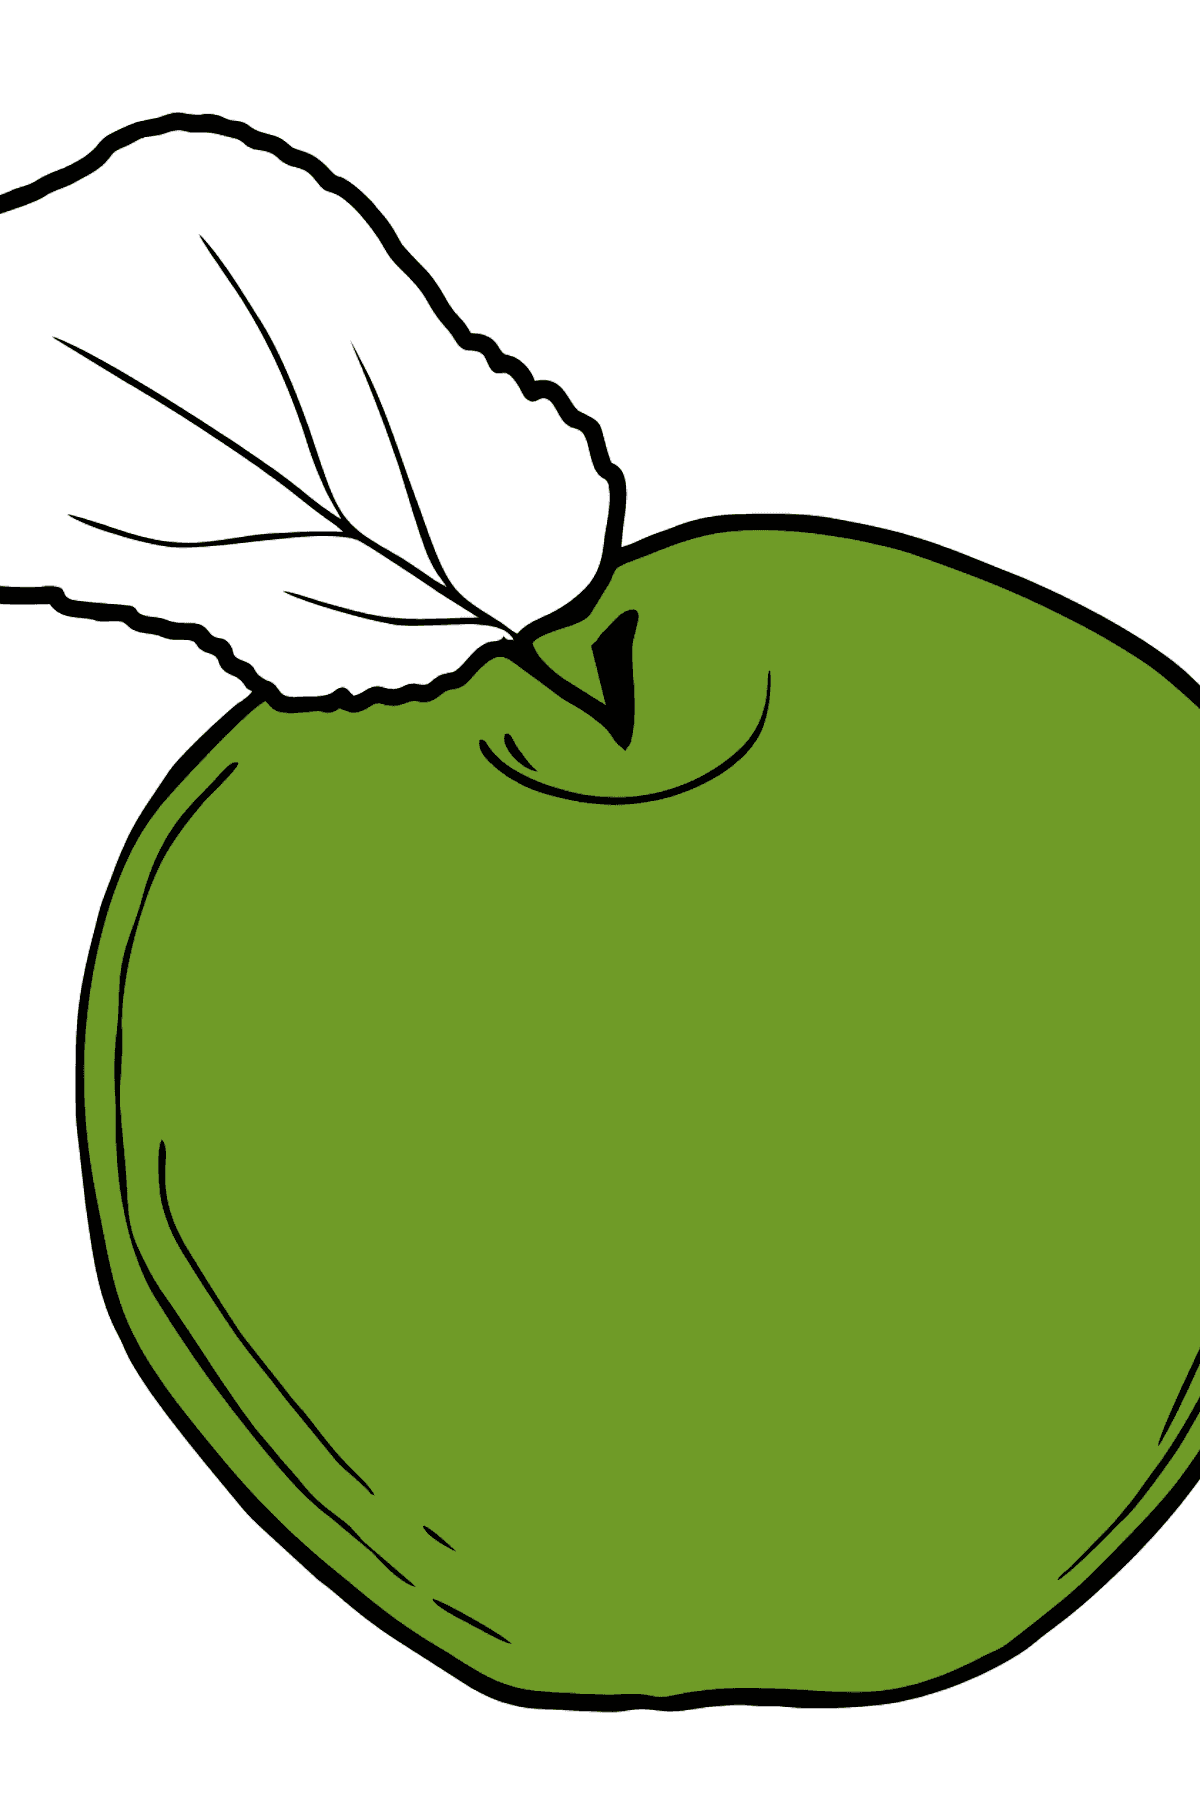 Apple coloring page - Coloring Pages for Kids